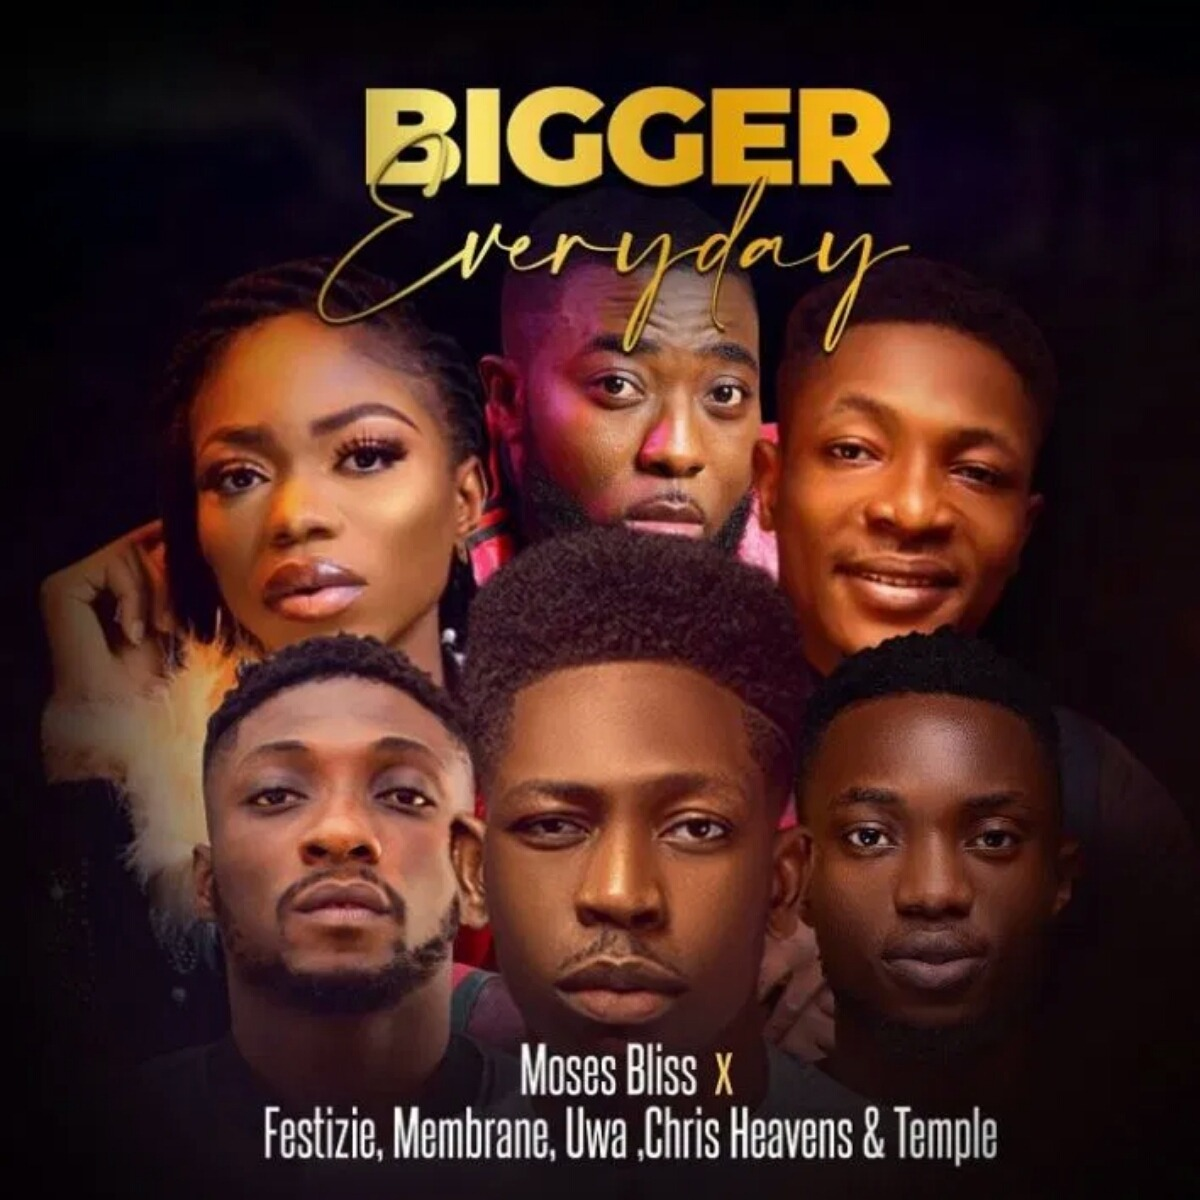 Bigger Everyday By Moses Bliss Ft. Festizie, Membrane, Uwa, Chris Heavens, Temple [Mp3]